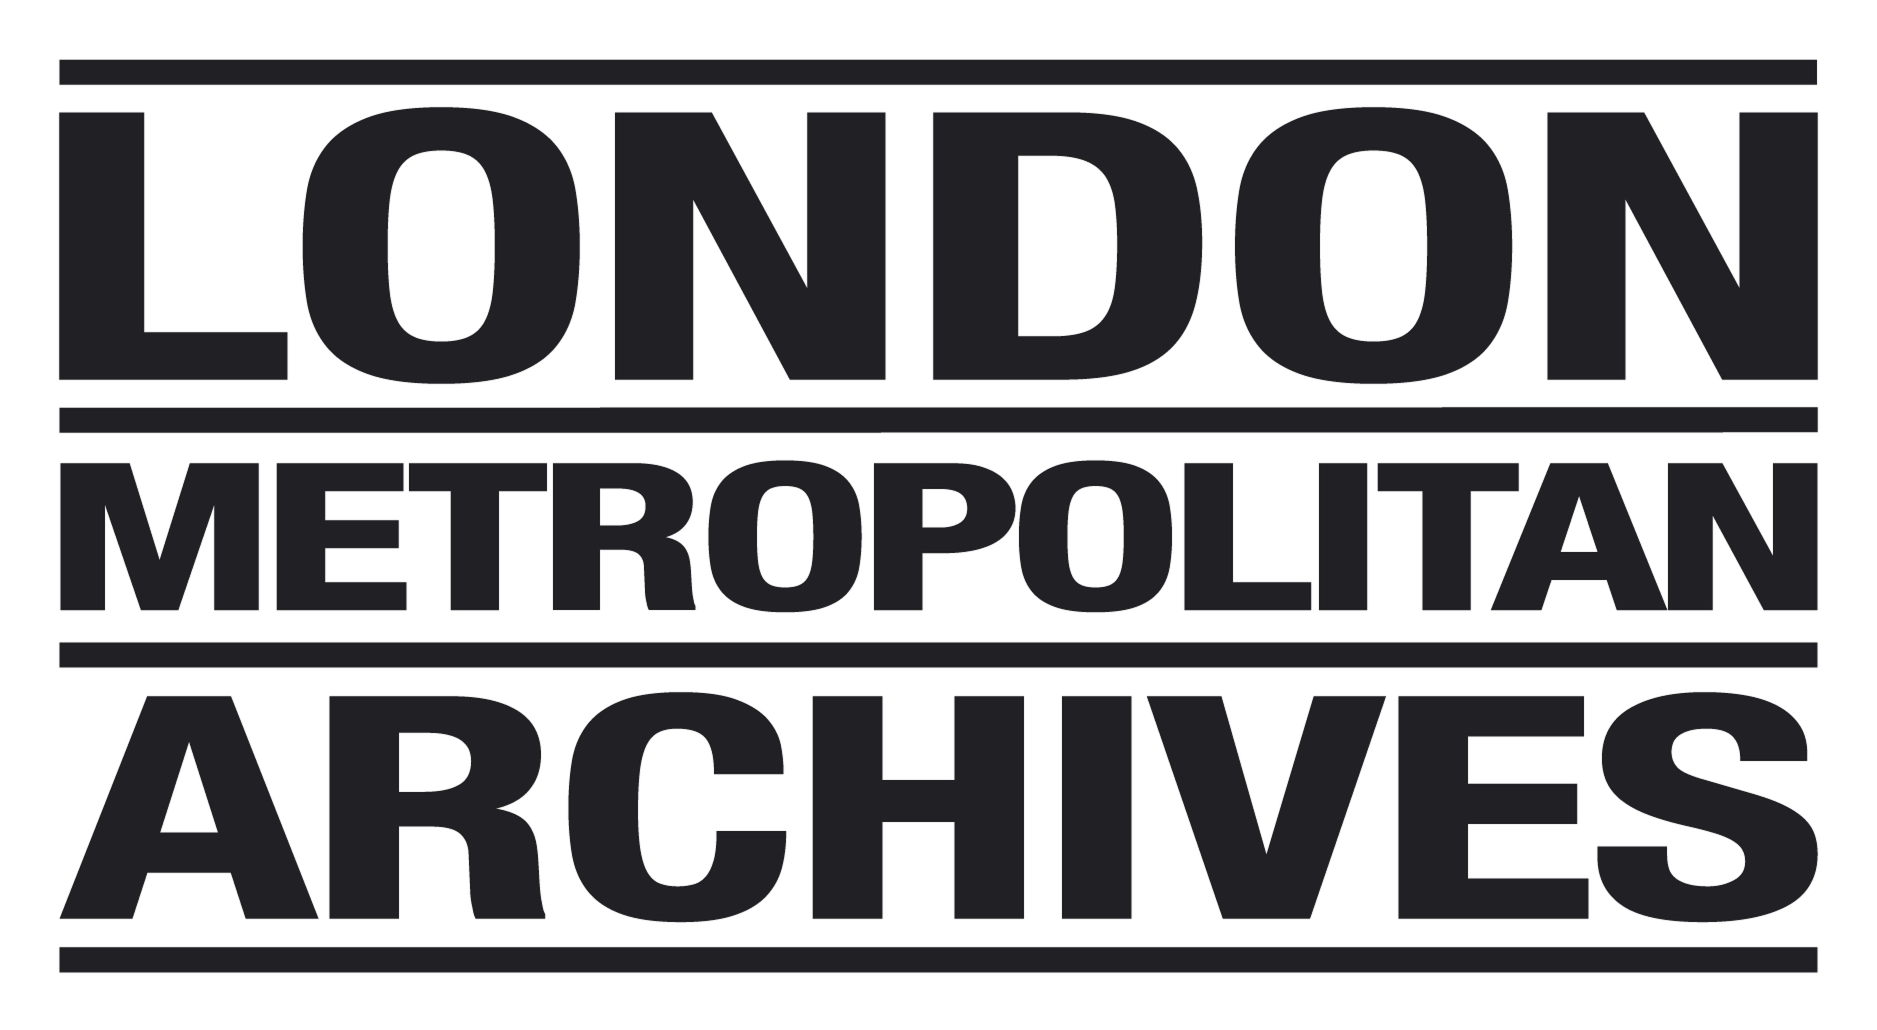 London-Metropolitan-Archives